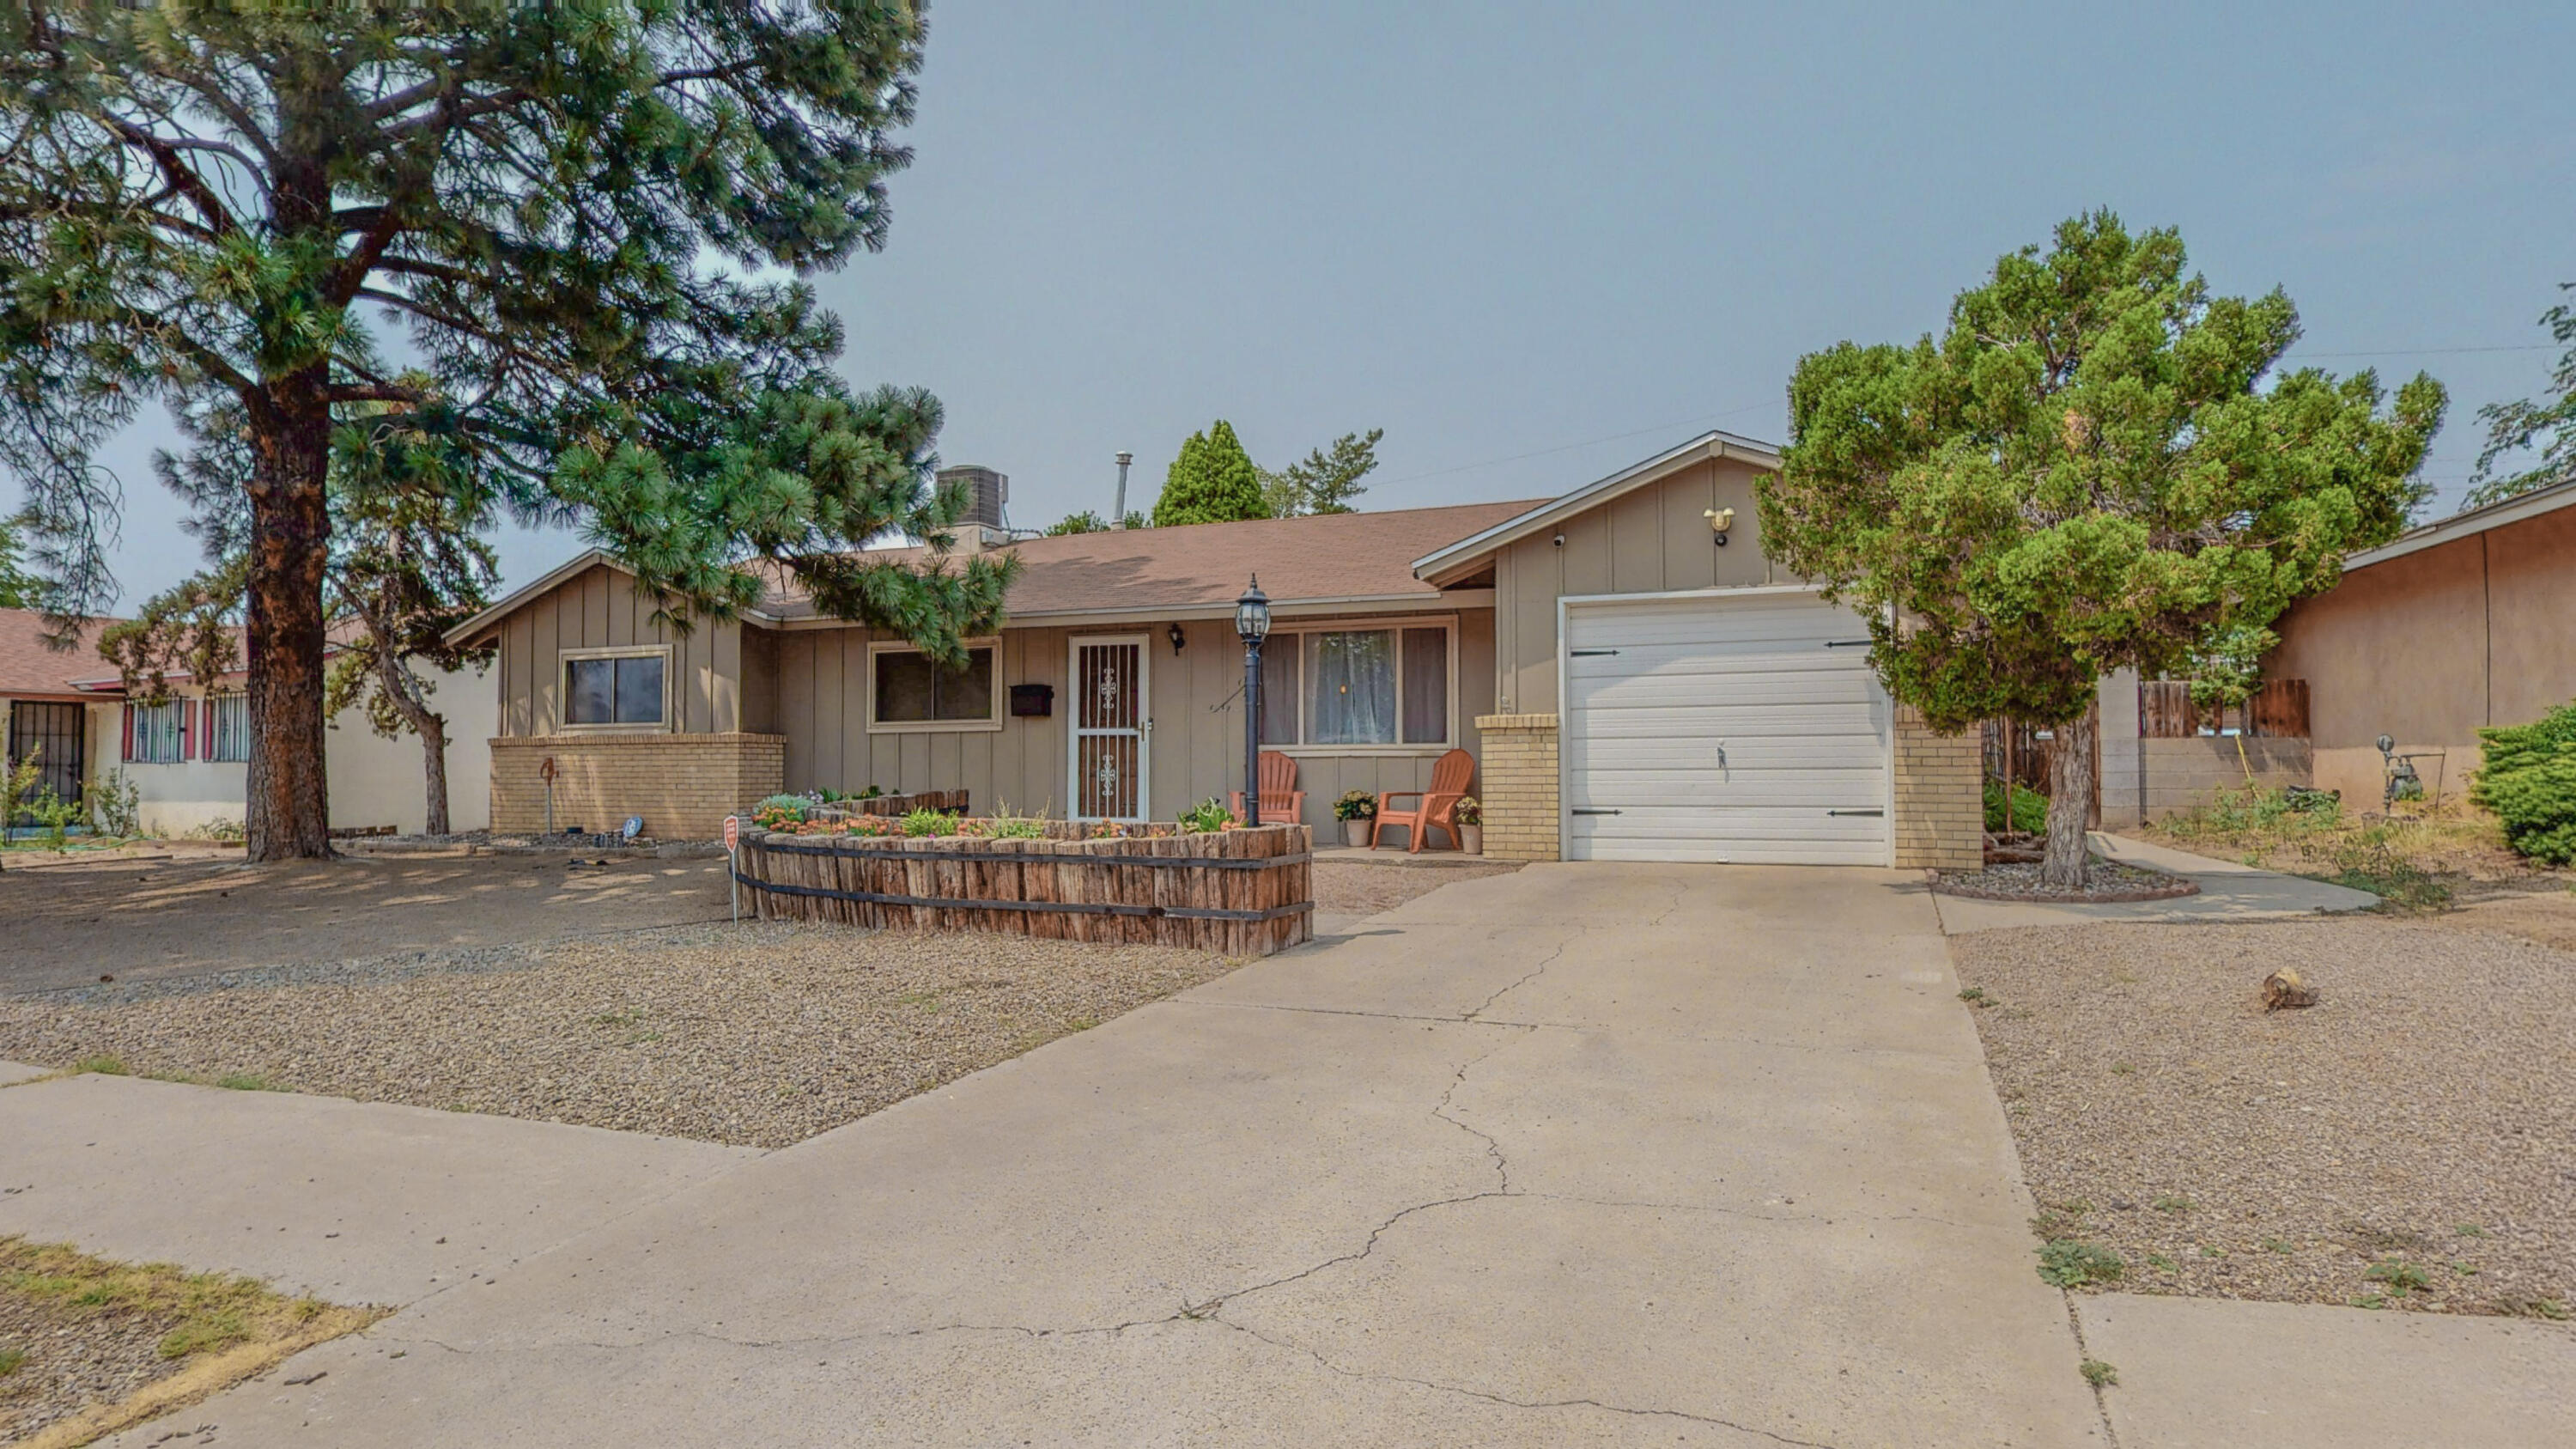 Beautiful NE Heights home located in an established and convenient location. Easy interstate access and close to shopping and restaurants. This home features an open floor plan with lots of natural light. Remodeled kitchen. Bonus 360 square foot addition has endless possibilities (no direct heat) heated by electric fireplaces. This room would be perfect for a family room. Backyard is huge and very private. Storage shed conveys. Home has upgraded refrigerated cooling system and a newer roof. There are bars for all the windows in the garage that will stay if owner wants to replace. Neighborhood park and schools are minutes away. Come take a look...clean and ready for a quick closing.